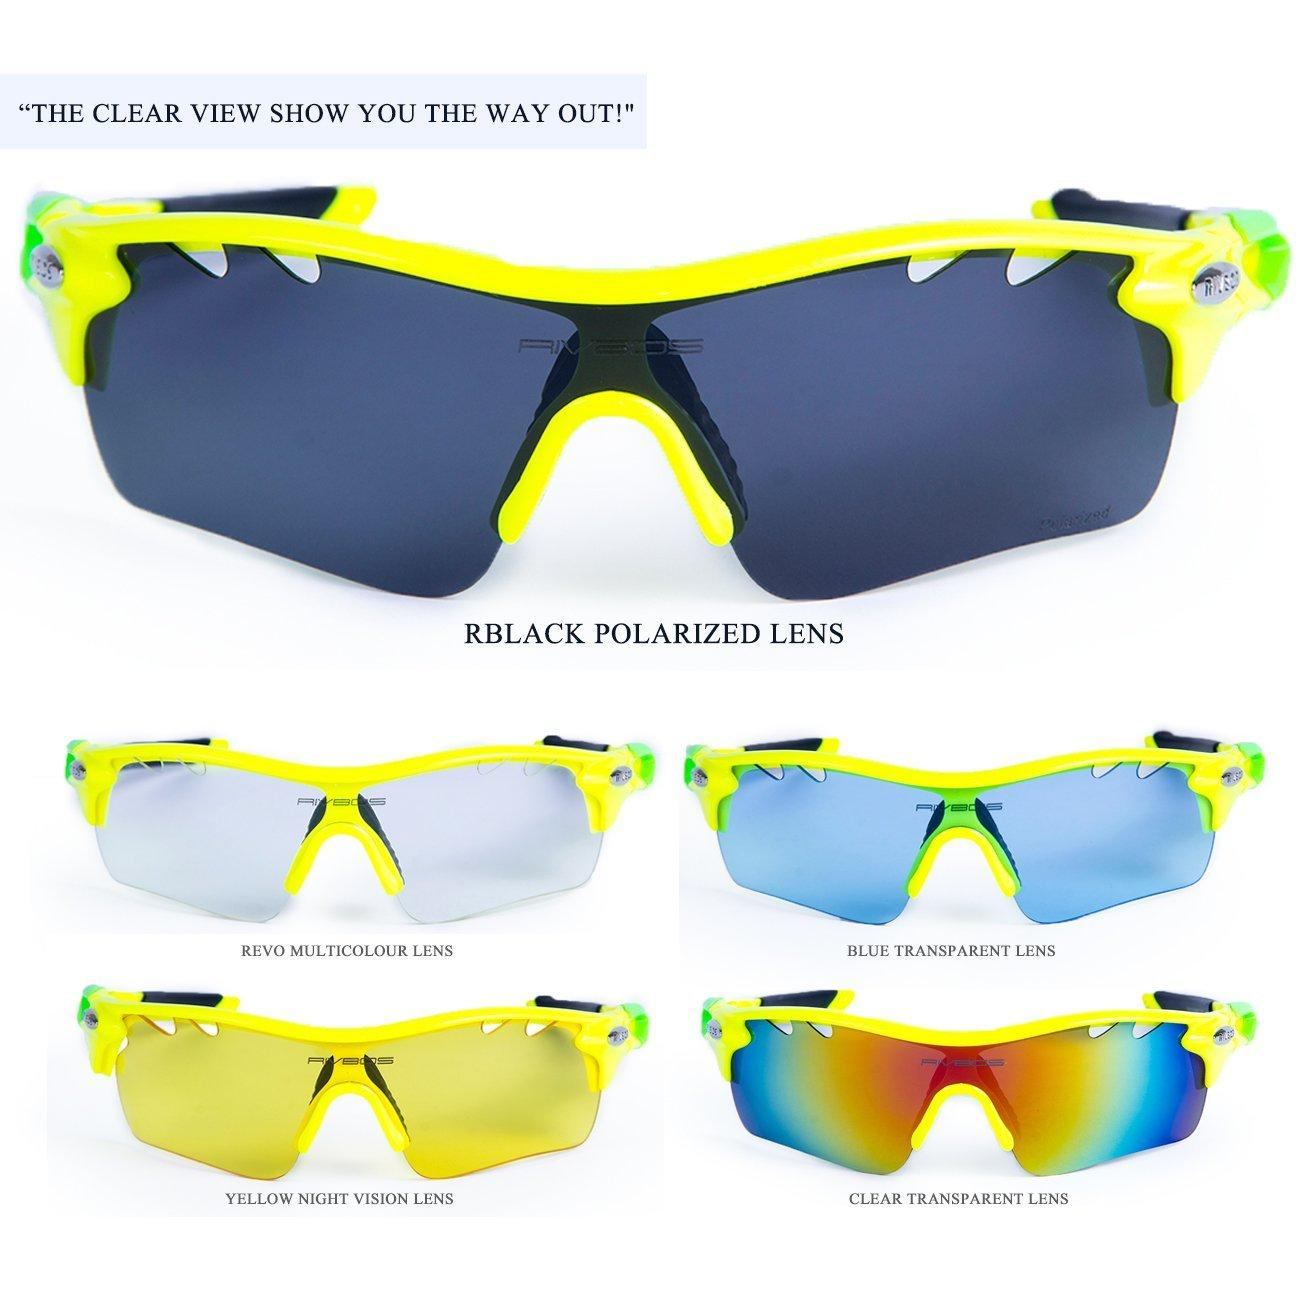 RIVBOS 801 POLARIZED Sports Sunglasses Glasses